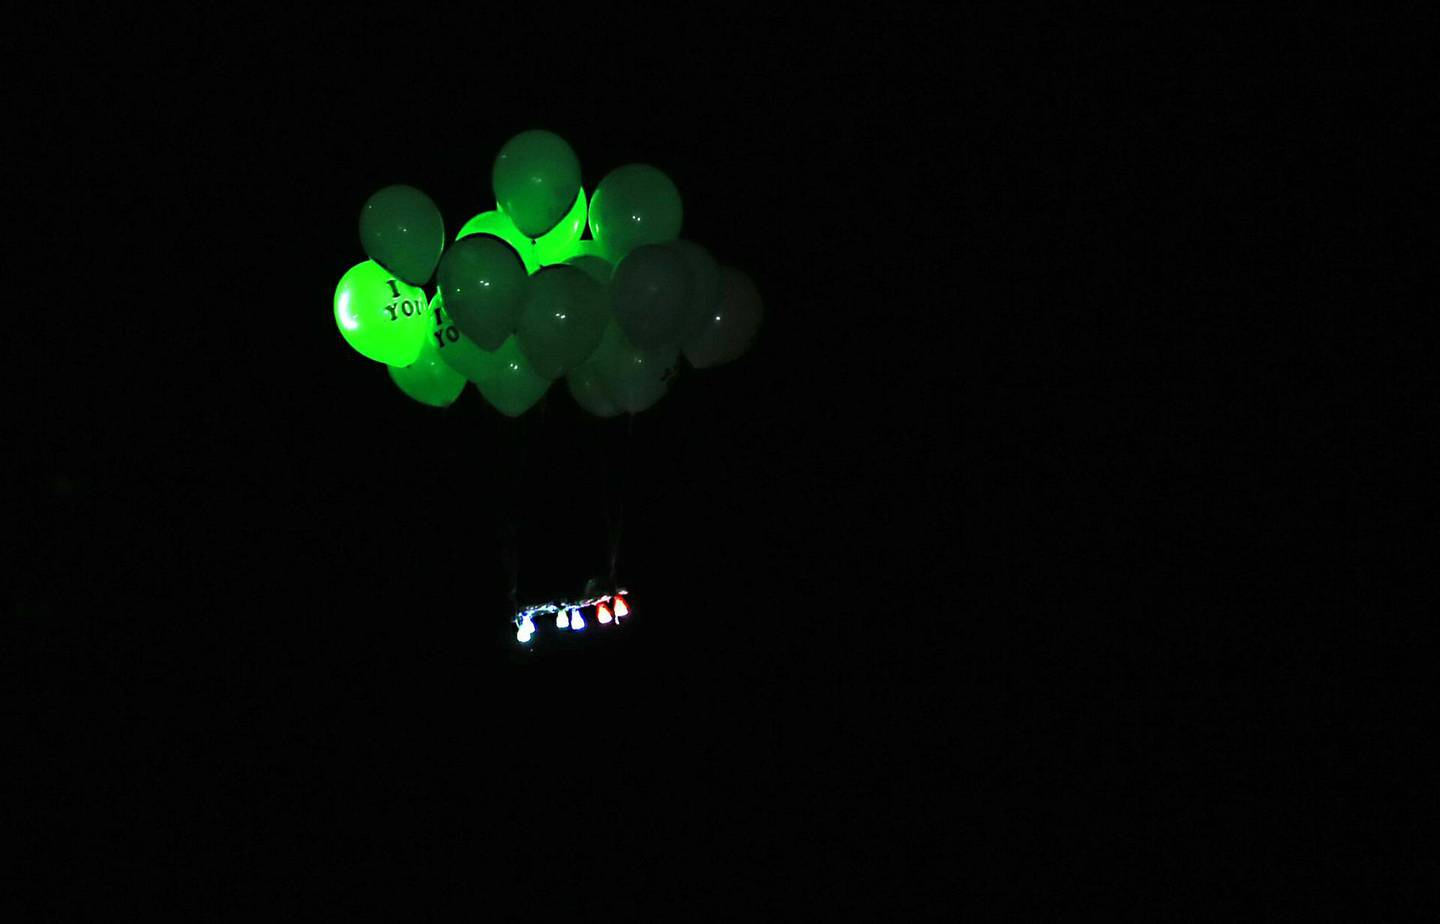 """Ballons attached with flammable materials launched by Palestinian protesters calling themselves the """"night confusion units"""" fly towards Israel, near the Gaza-Israel border east of Rafah in the southern Gaza Strip, on September 26, 2018. The border protests since March 30 have been labelled the """"Great March of Return"""" because they call for Palestinian refugees to return to their former homes inside what is now Israel. Hundreds of thousands of dollars in damage were caused to Israeli land -- including incinerated crops -- by the kites and balloons, Israeli authorities said. / AFP / SAID KHATIB"""